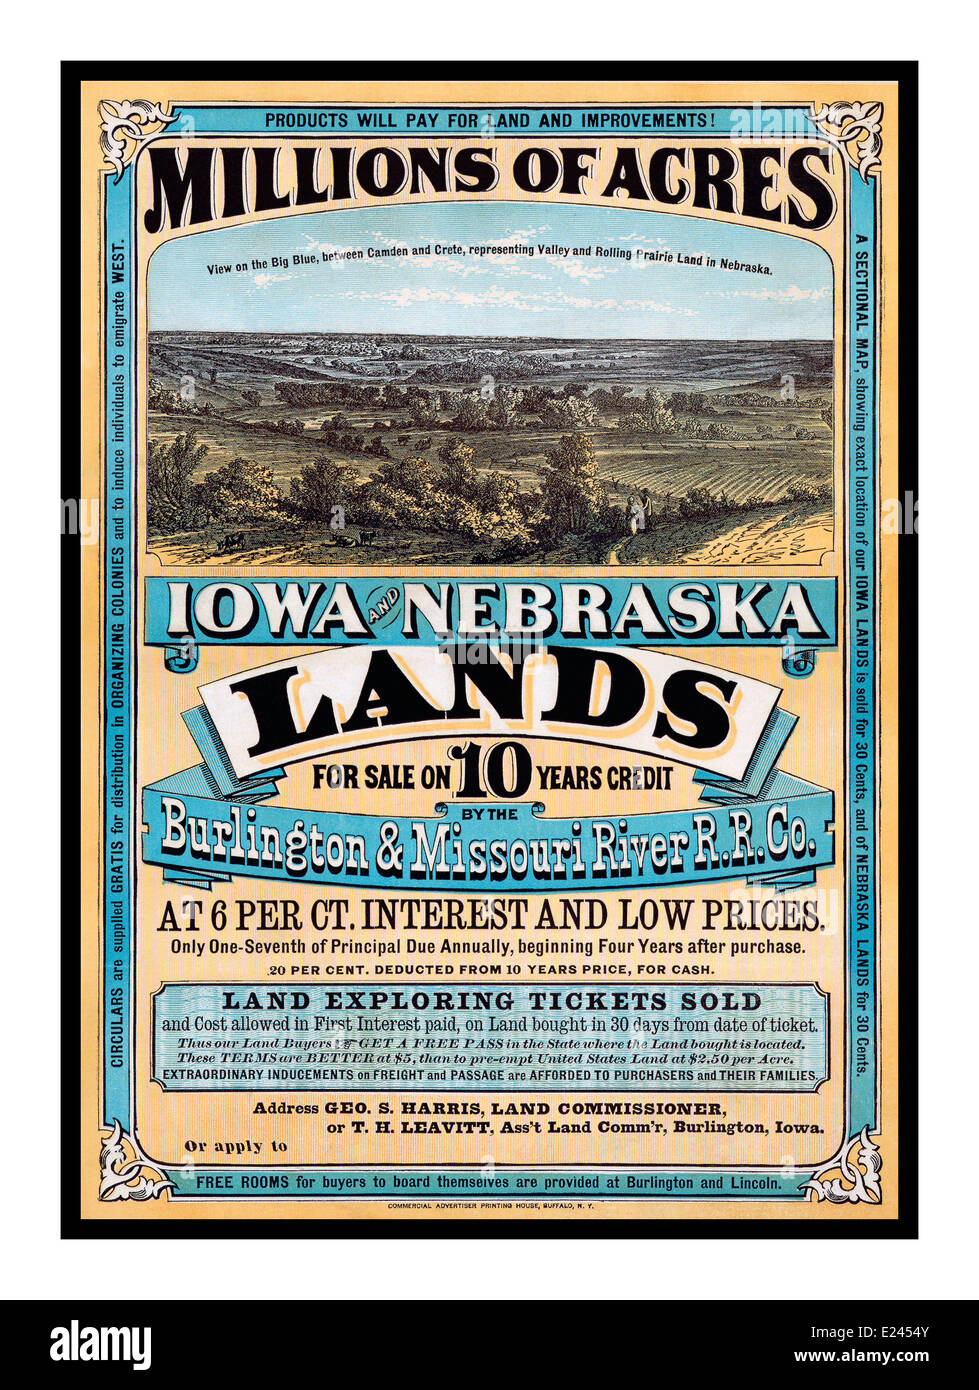 19th century vintage poster promoting land ownership in for Lenders for land purchase